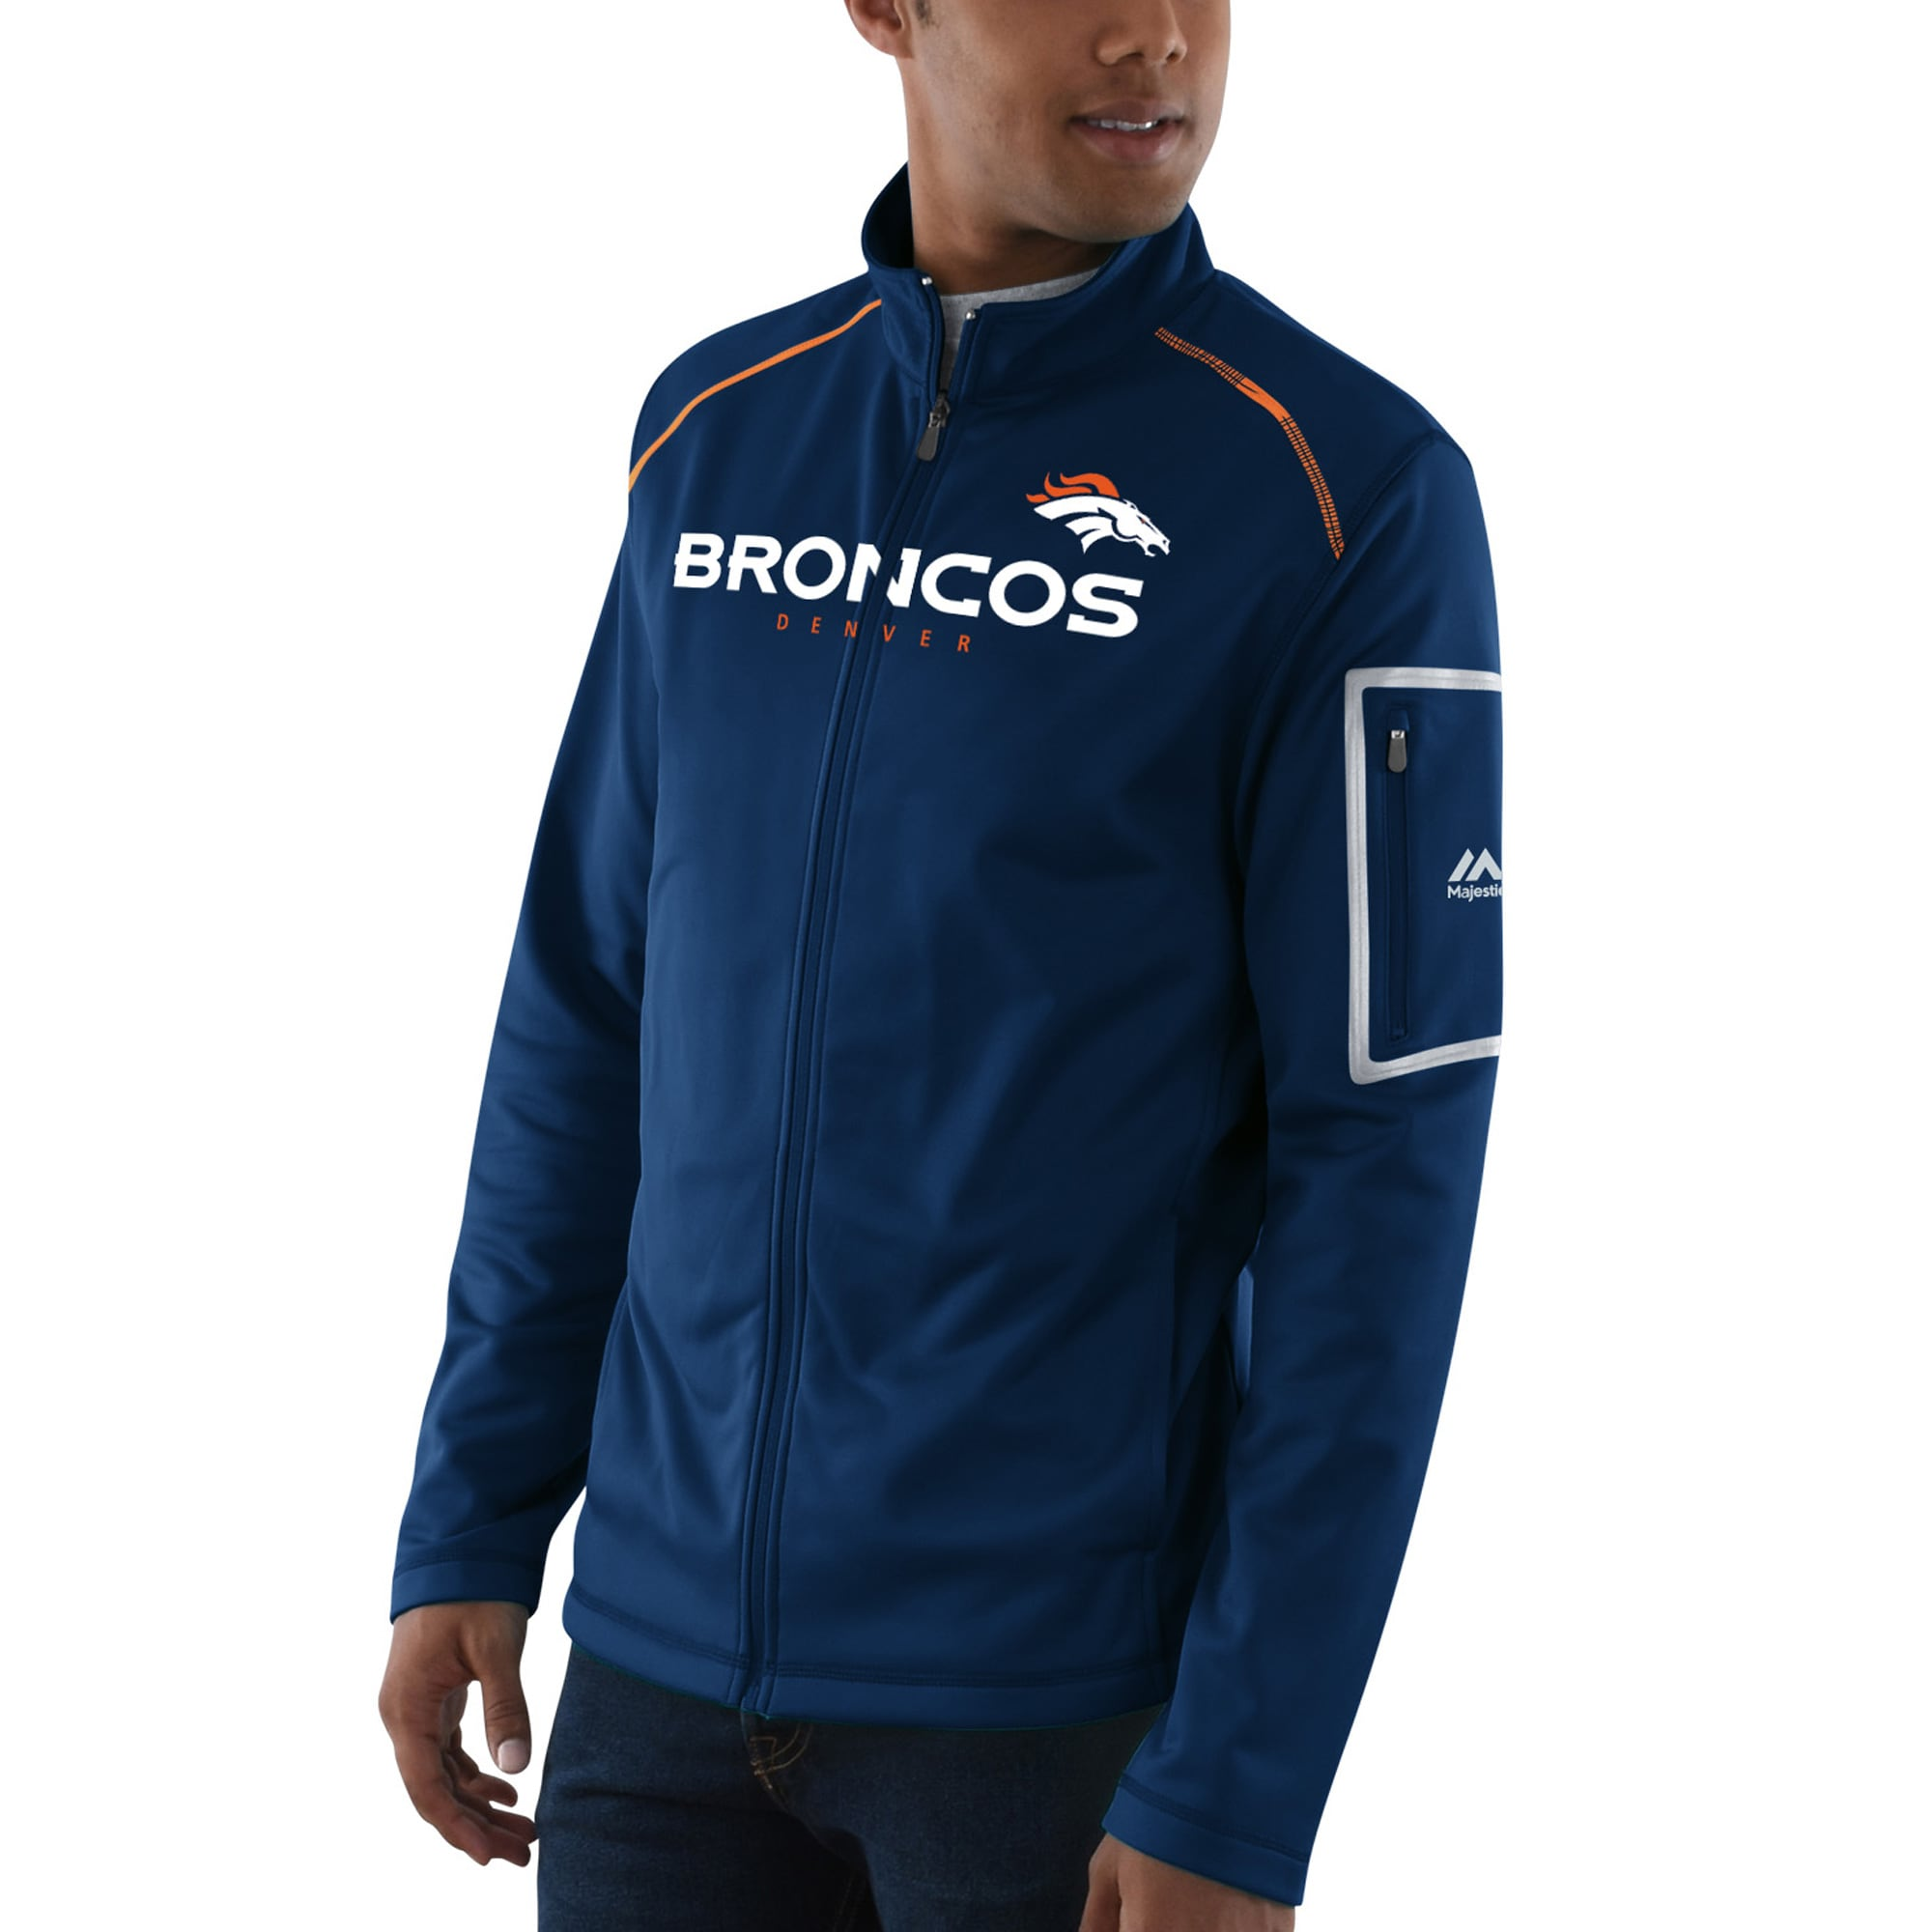 Denver Broncos Majestic Team Tech Track Jacket - Navy